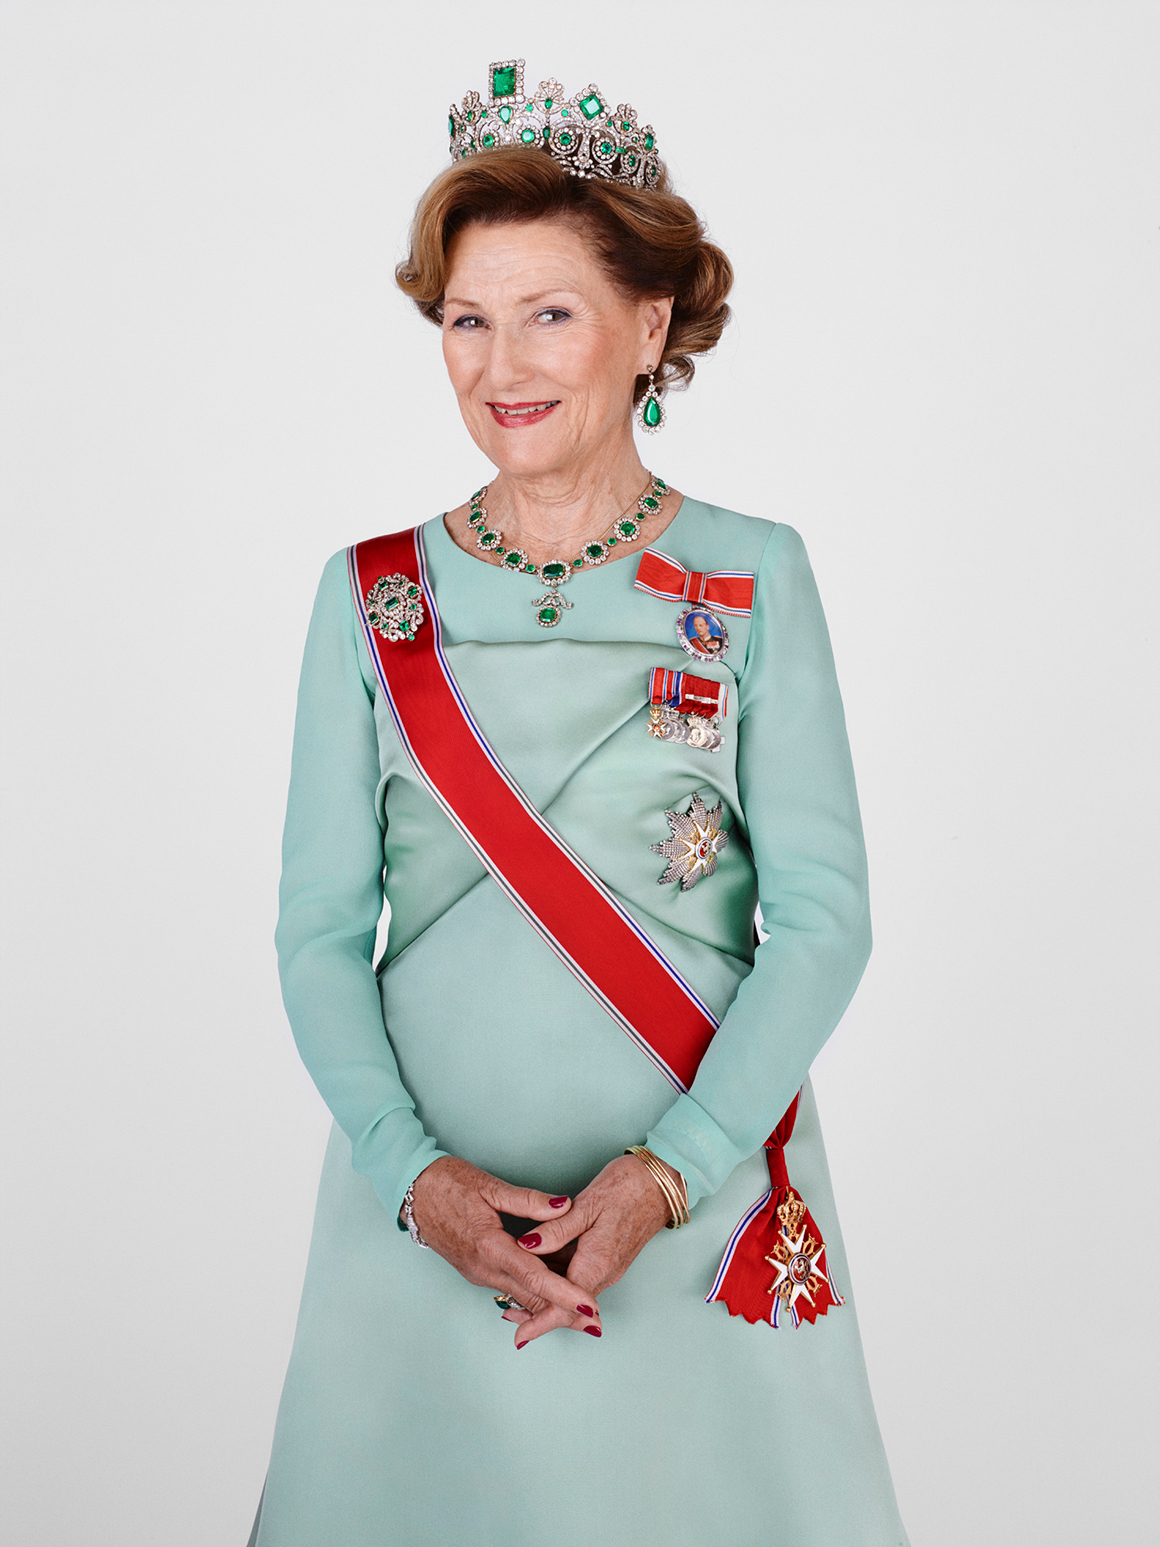 Queen Sonja - The Royal House of Norway